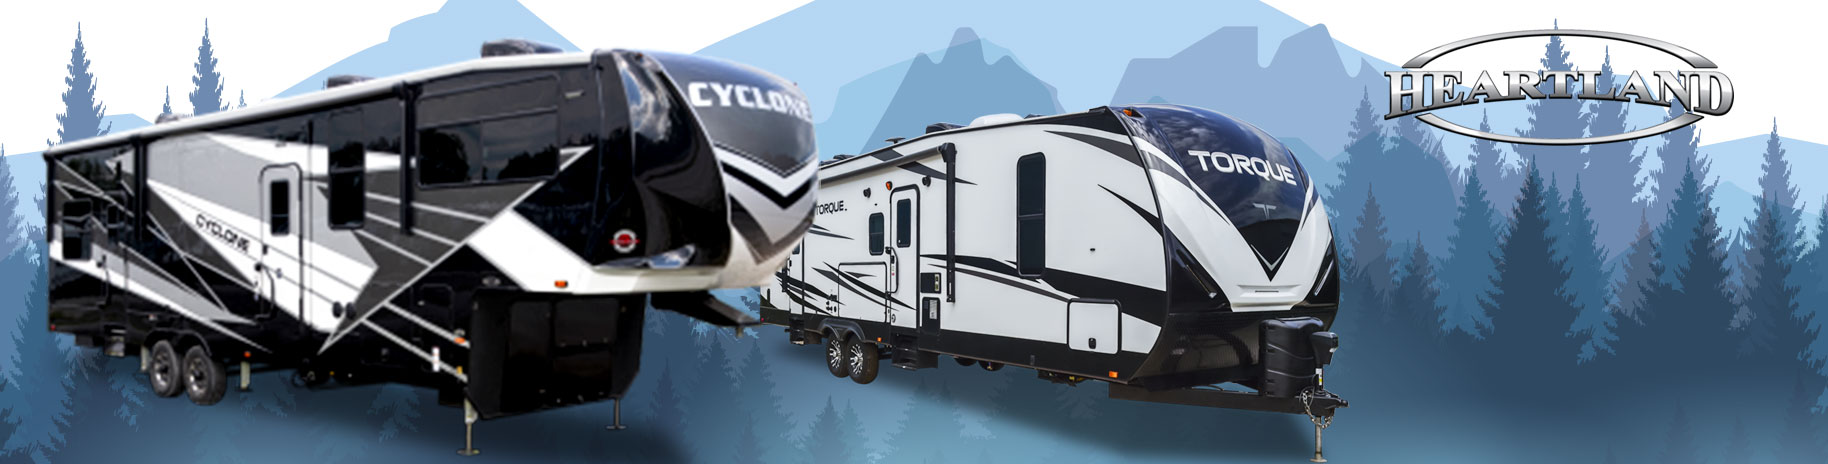 Heartland Cyclone and toque rvs for sale